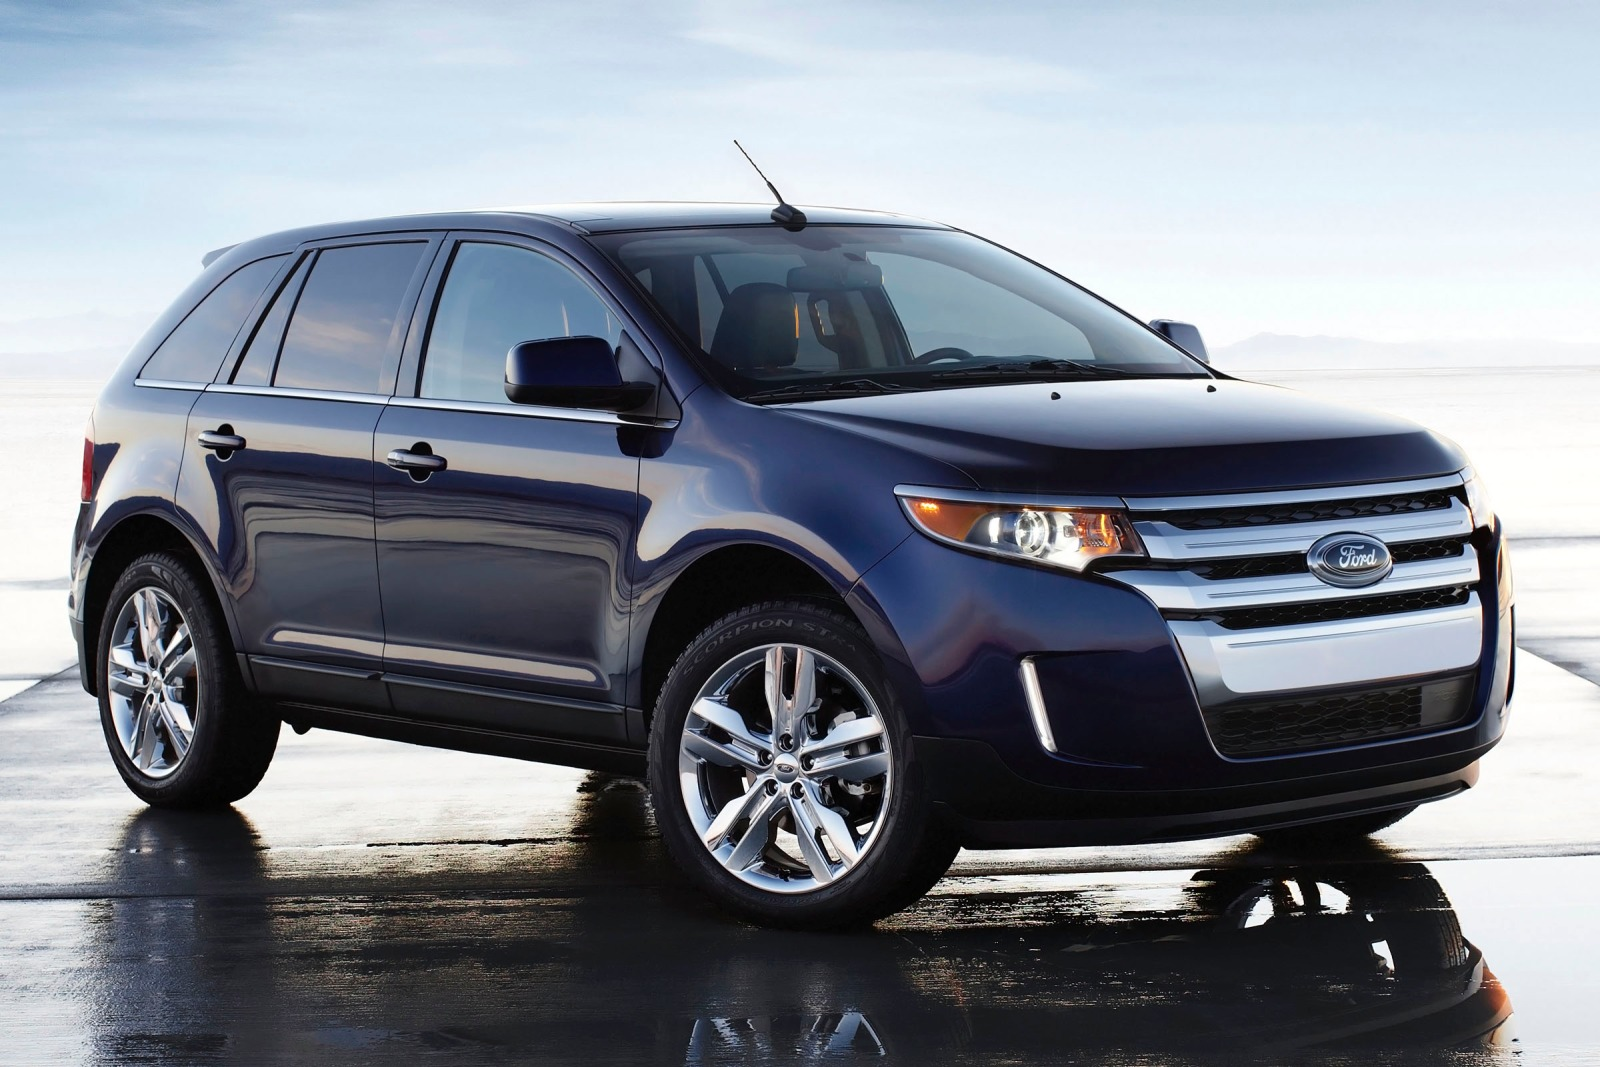 2013 Ford Edge 4dr SUV Re exterior #1